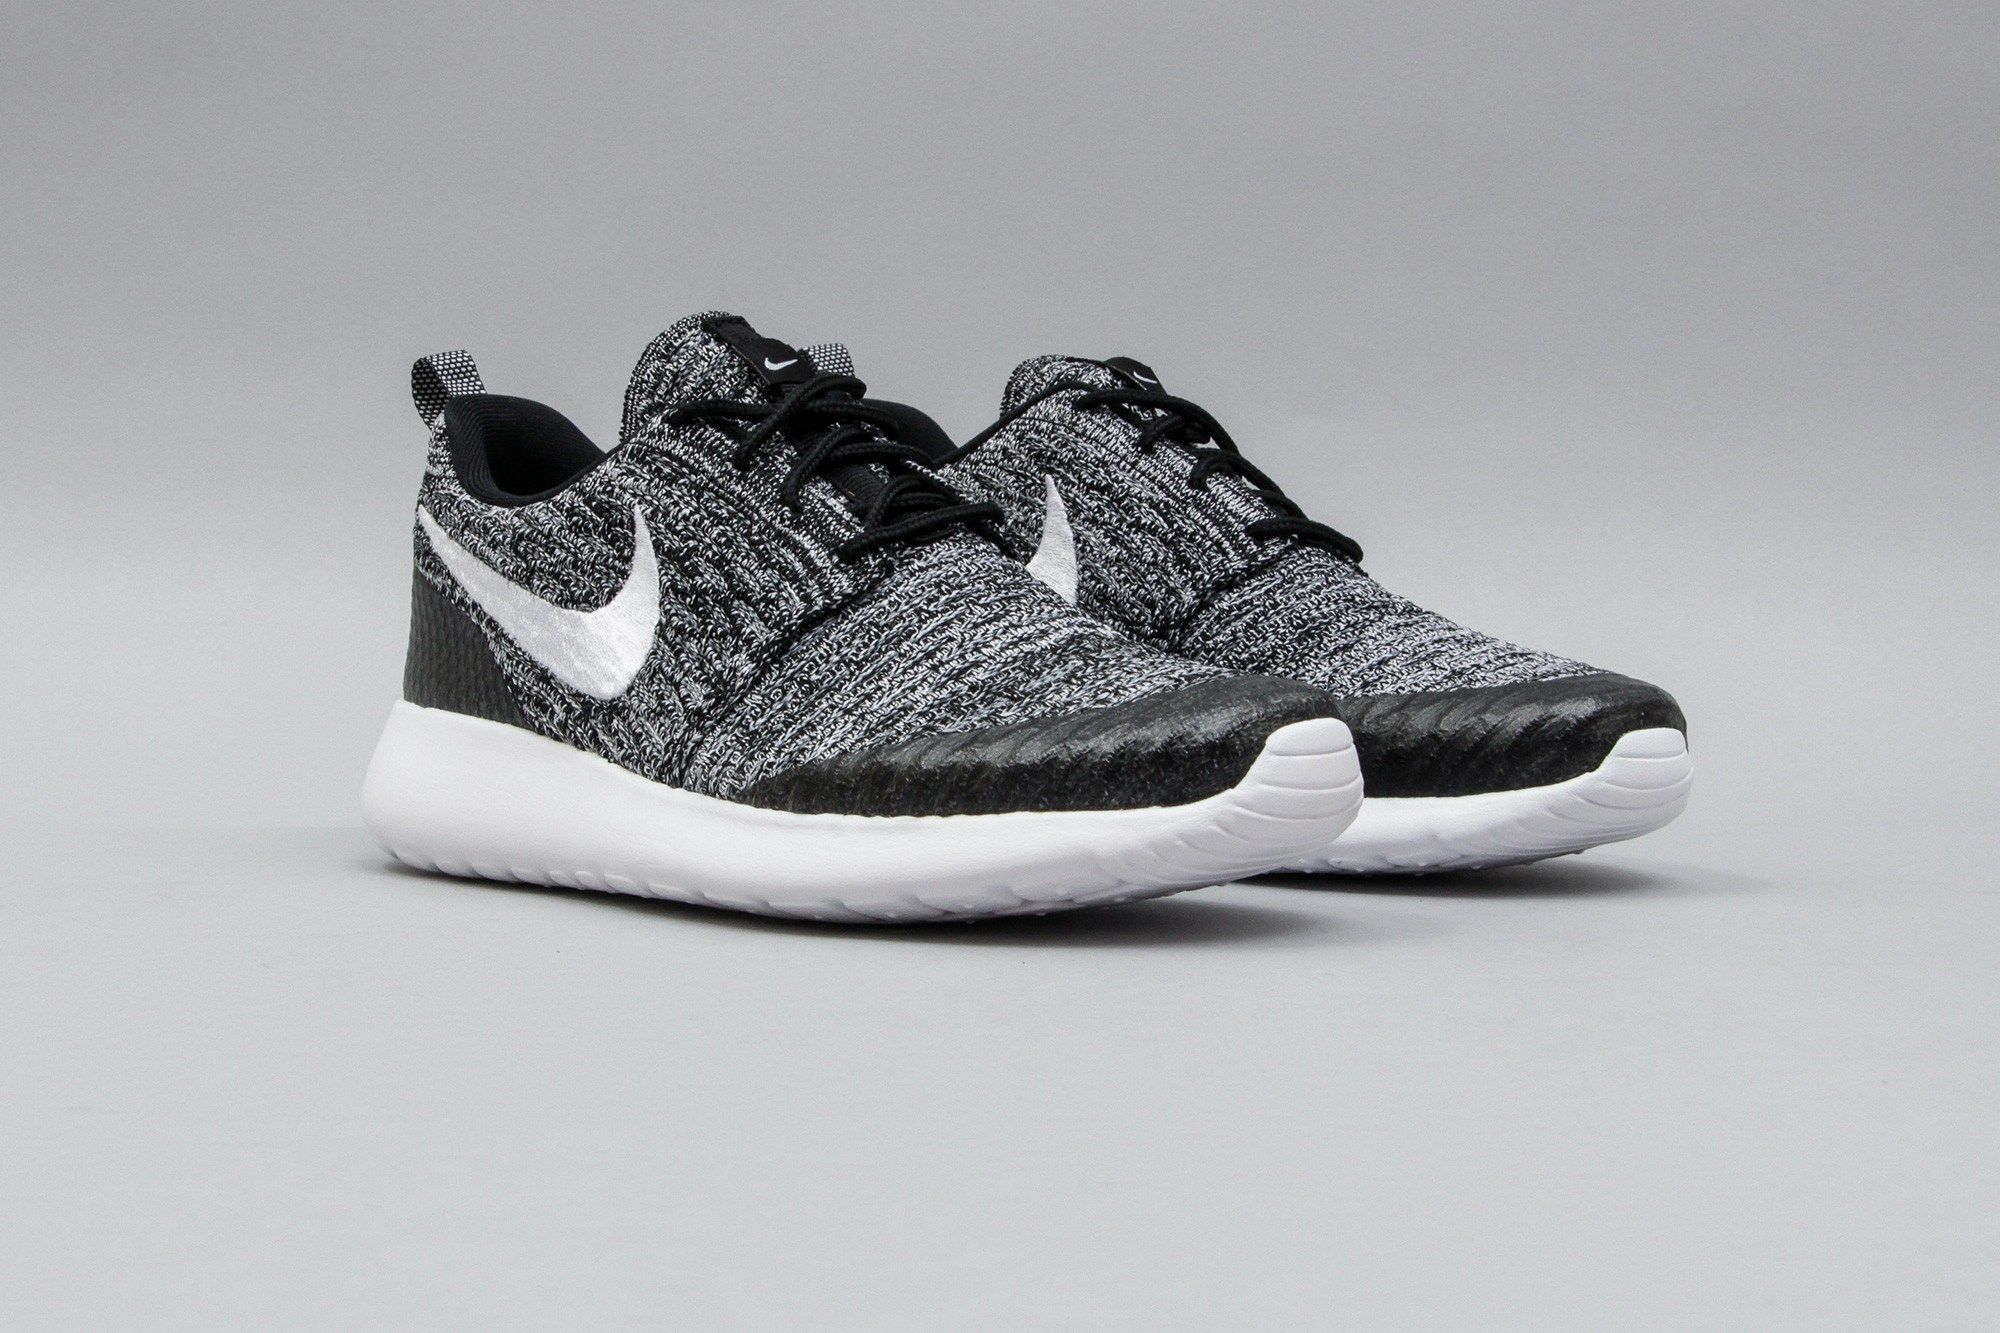 new concept c5b8c 94ff6 Nike Wmns Roshe One Flyknit Black White Cool Grey 704927 010 (Grau) from B  V D S T